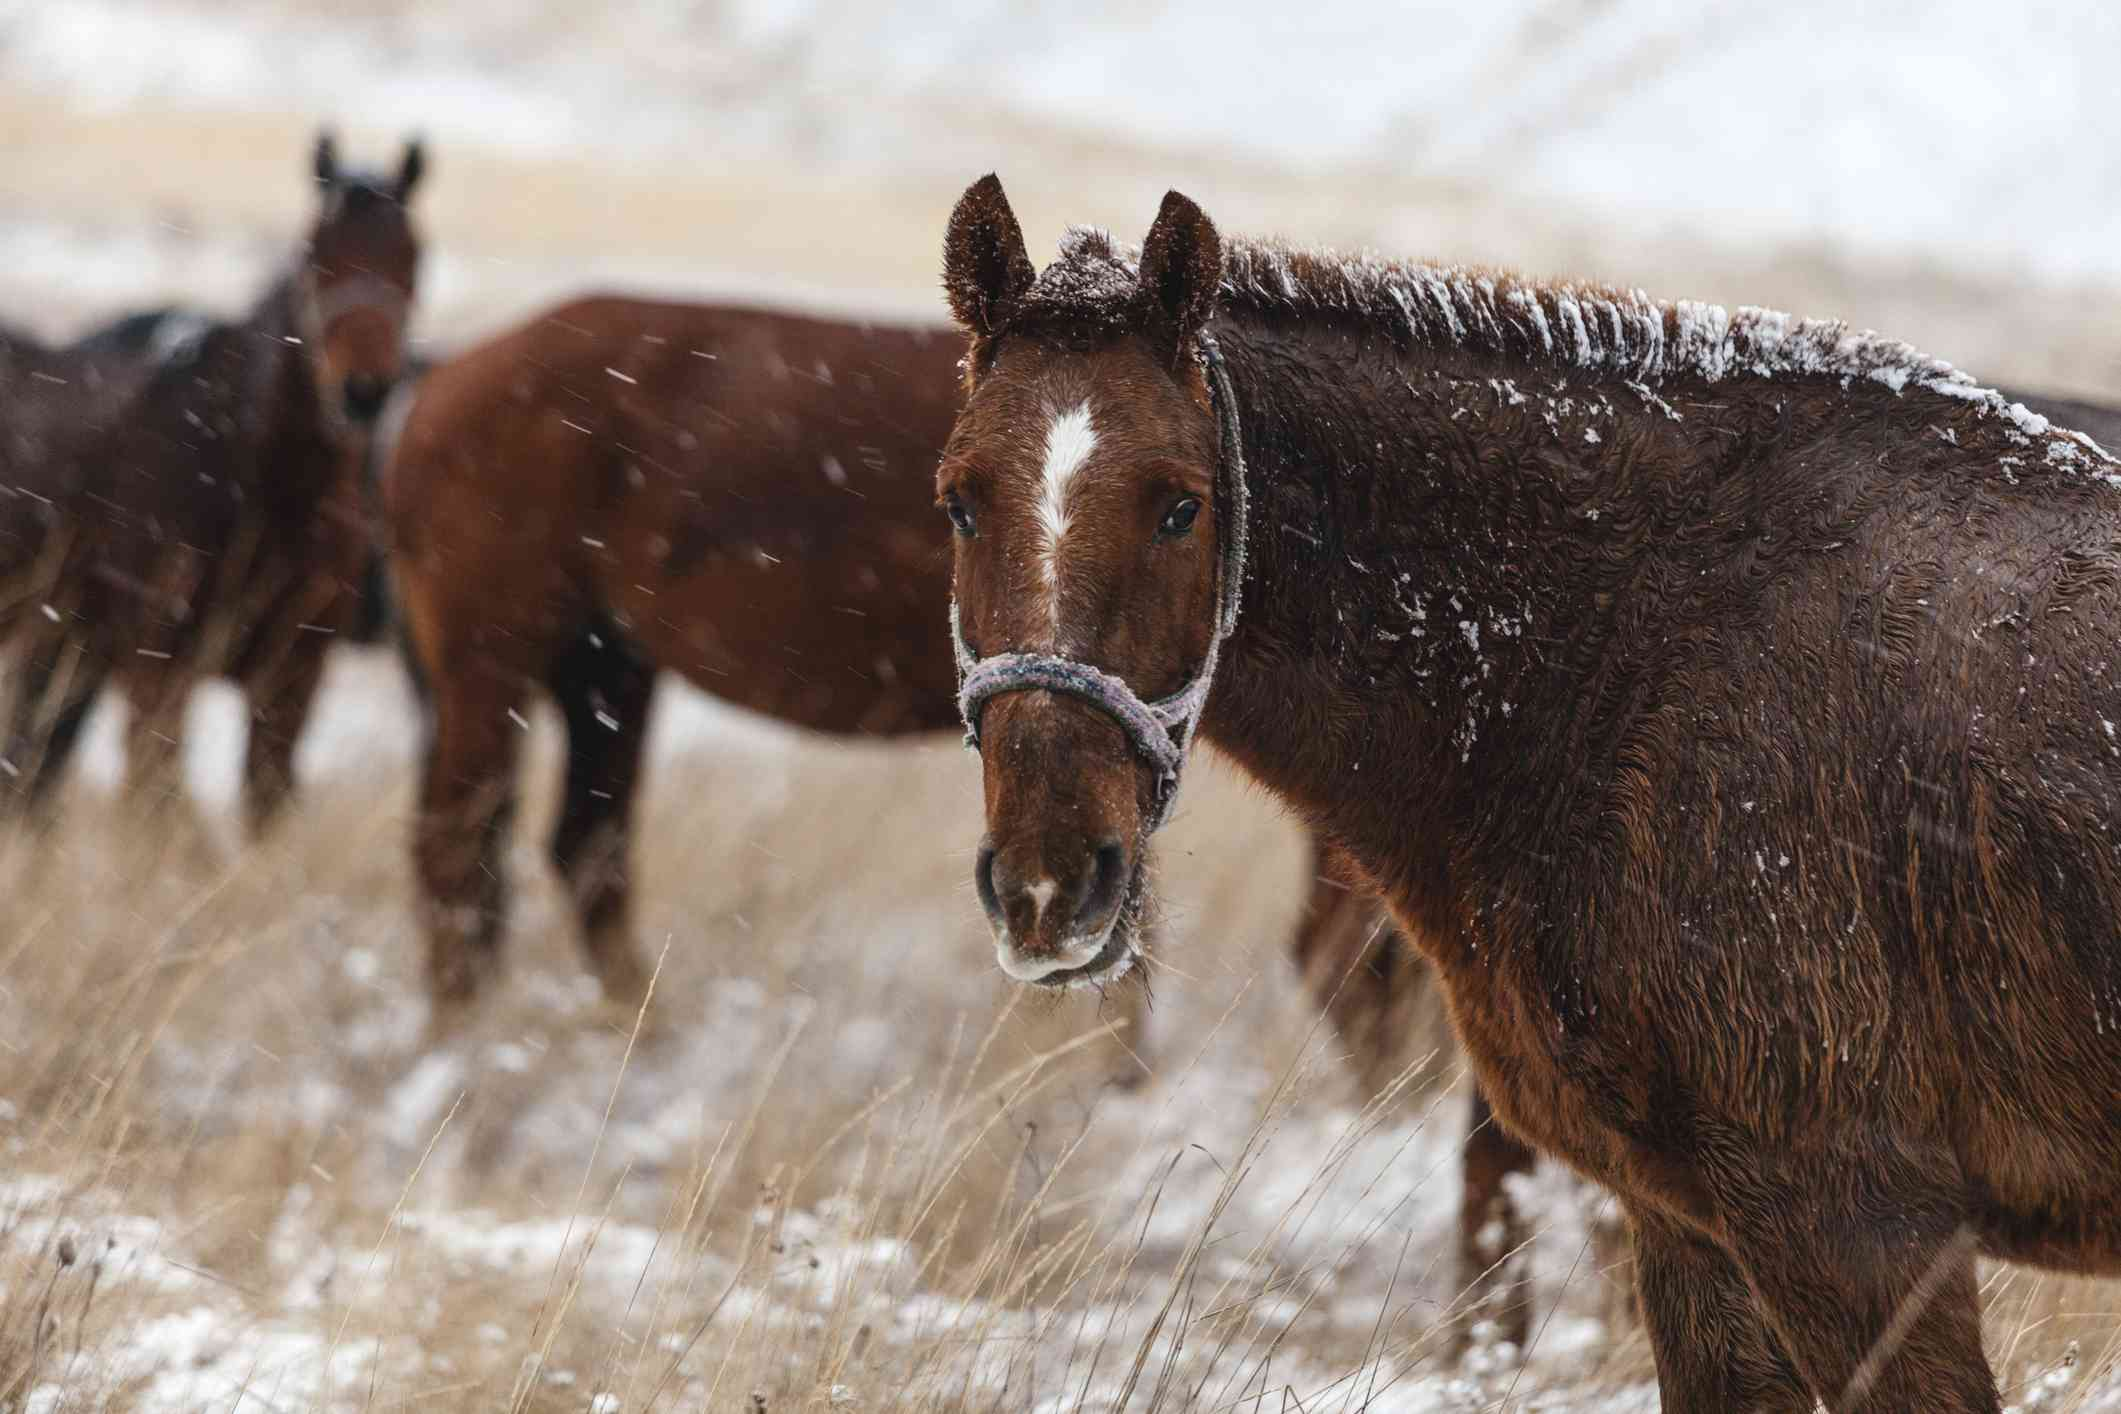 A brown Appendix Quarter Horse standing in snowy field.